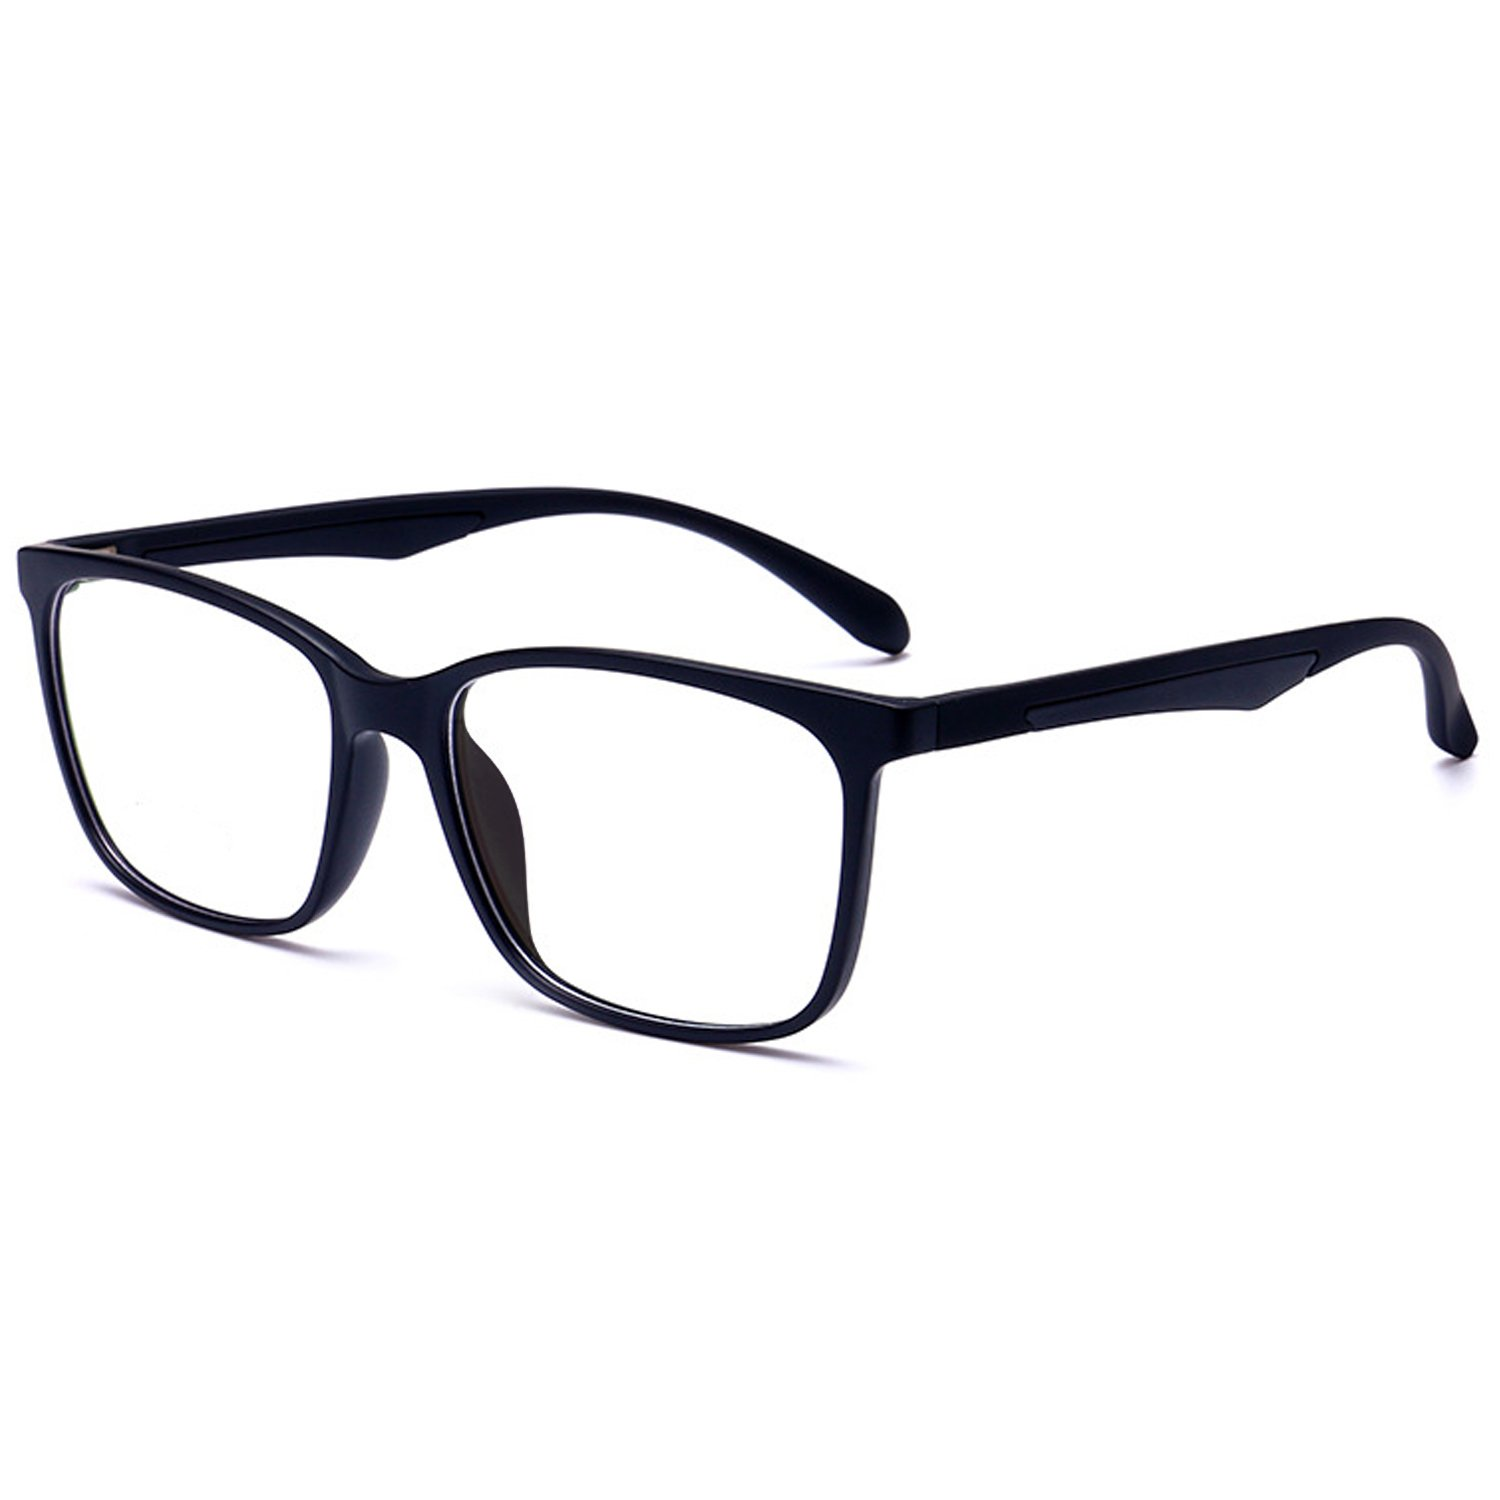 18dead54f0 Best Rated in Computer Blue Light Blocking Glasses   Helpful ...